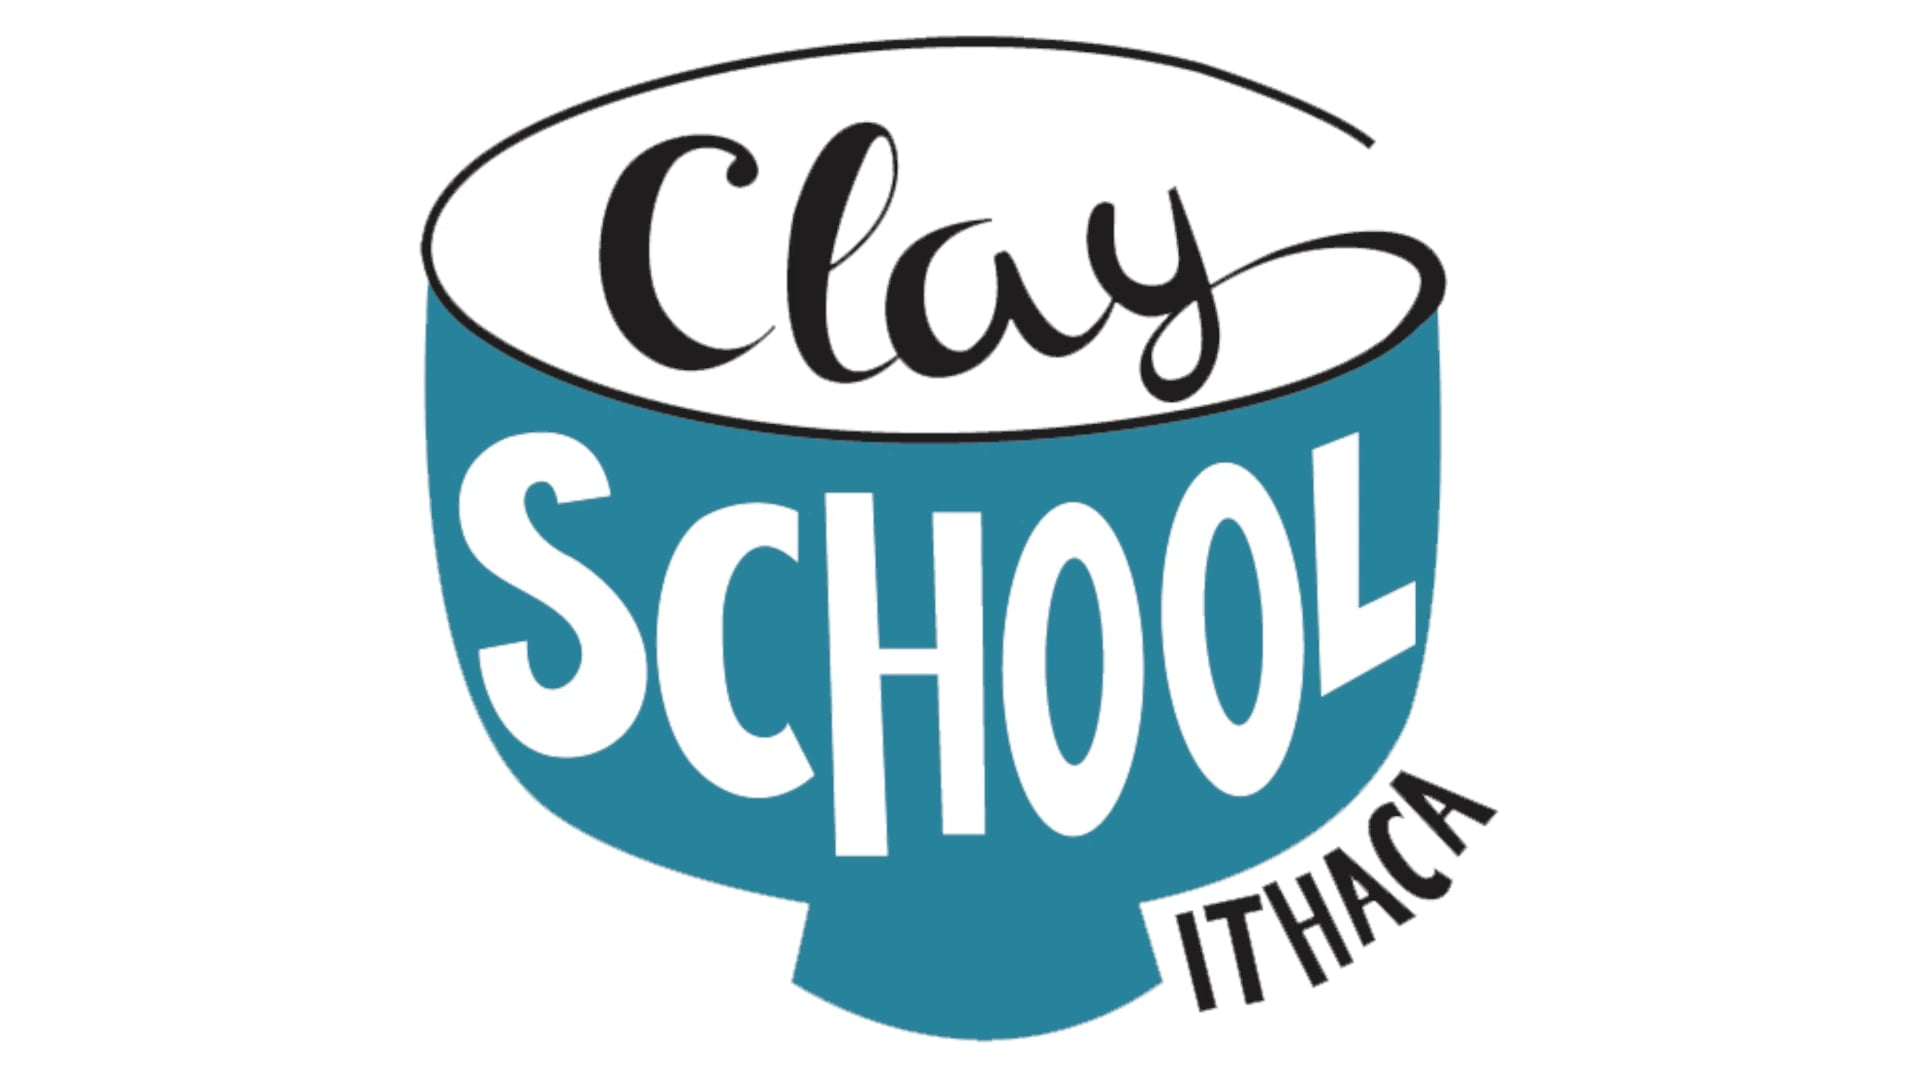 Clay School Welcome Video